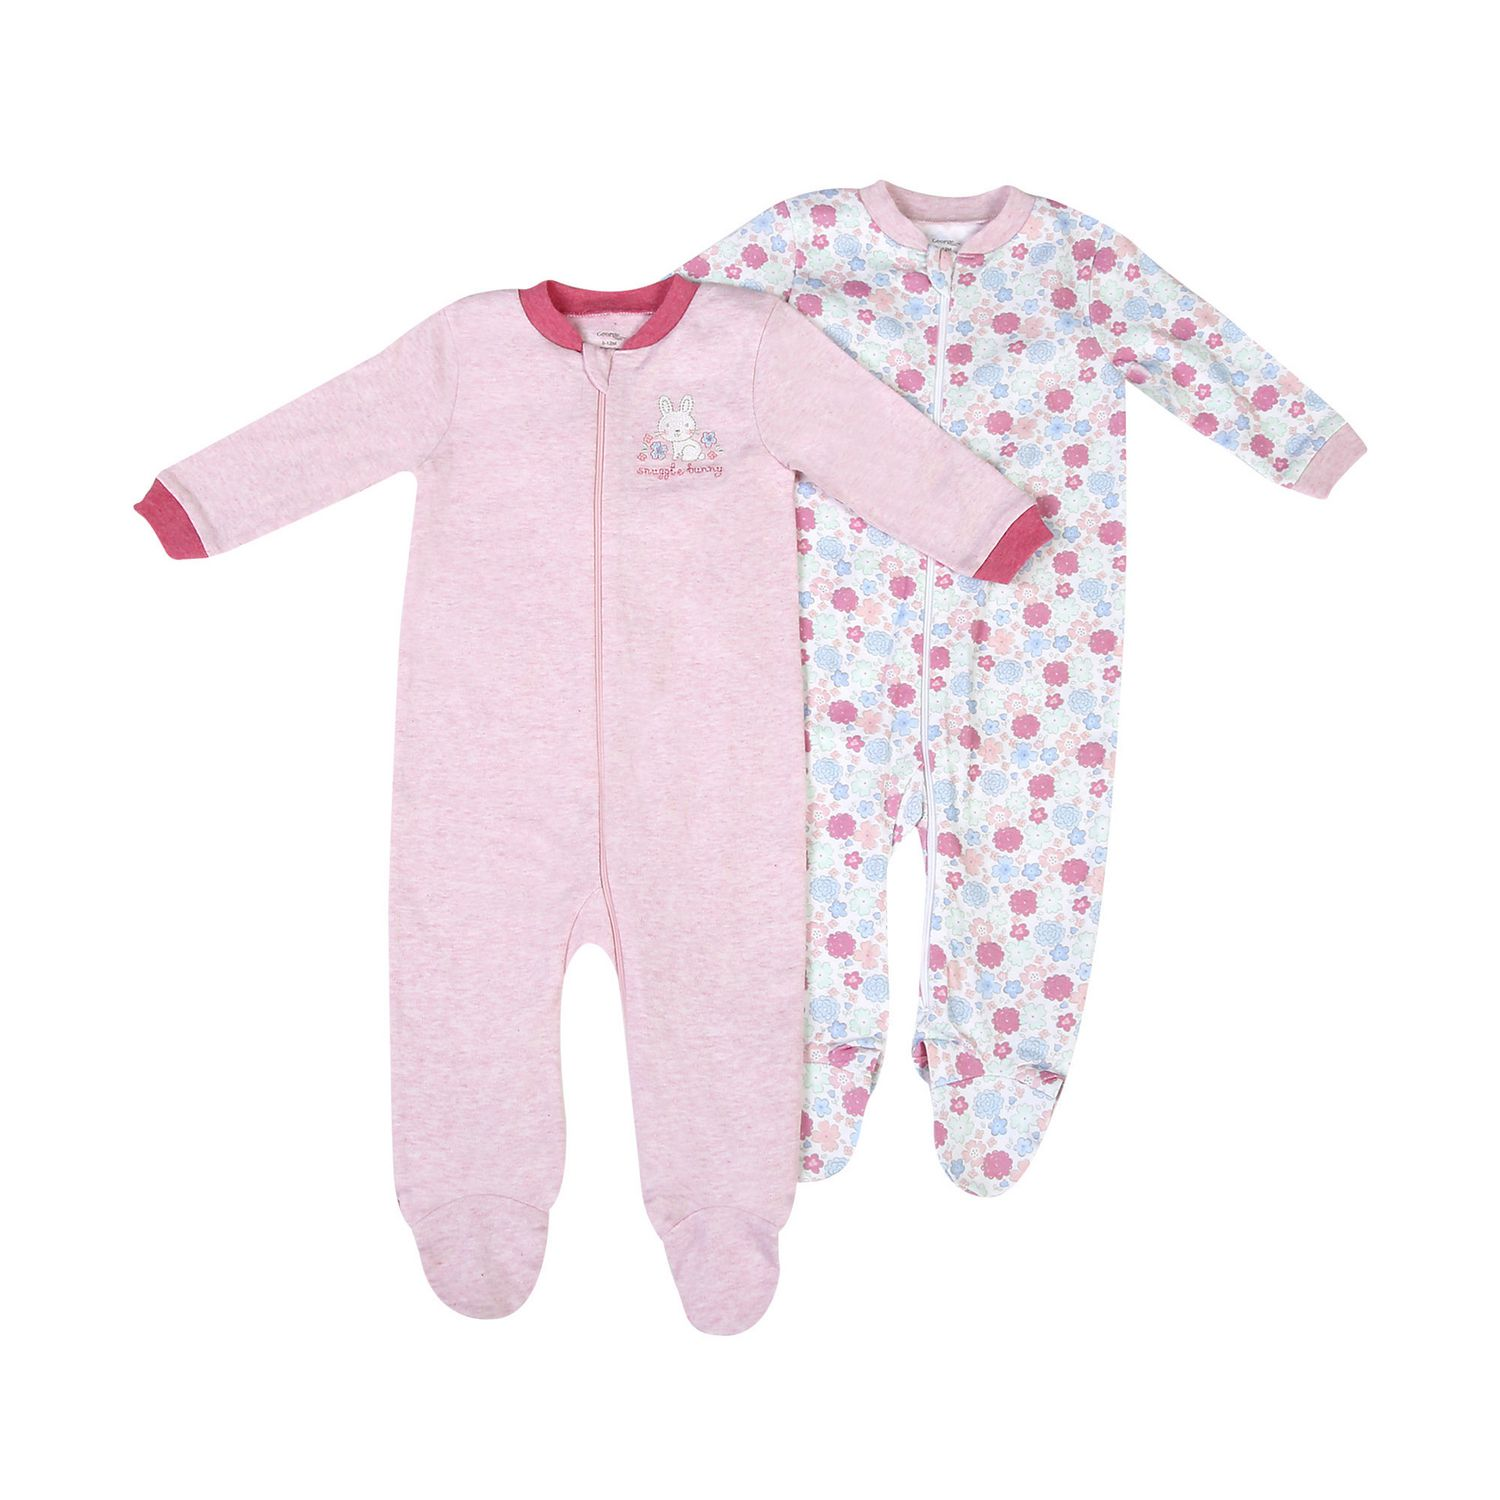 George baby Girls Cotton Sleepers 2 Pack